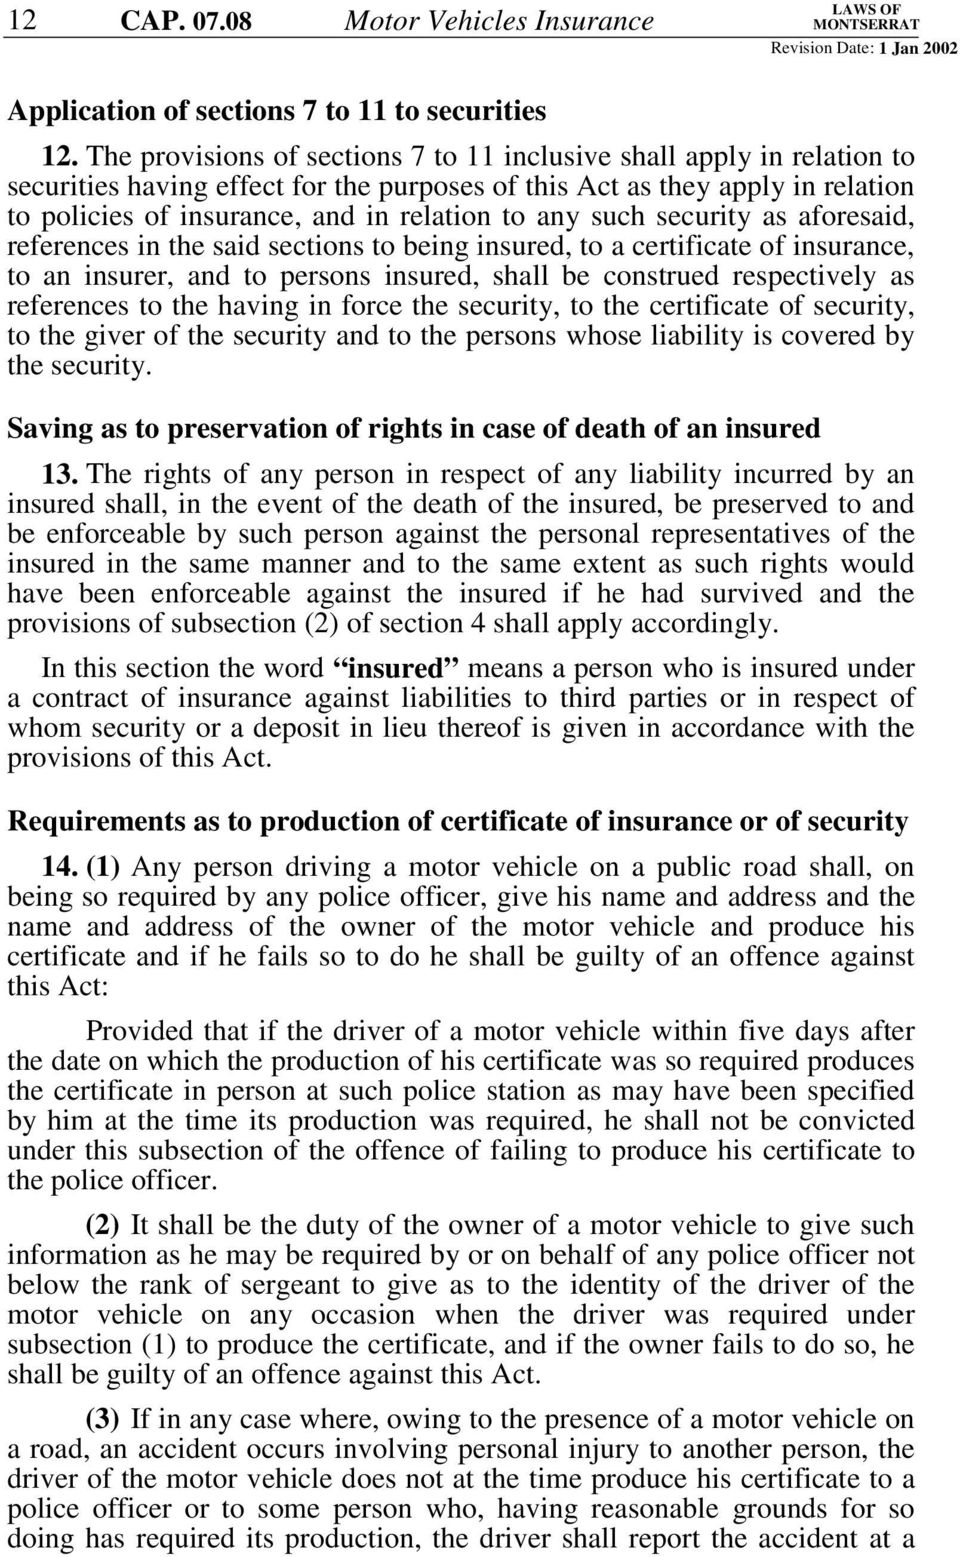 any such security as aforesaid, references in the said sections to being insured, to a certificate of insurance, to an insurer, and to persons insured, shall be construed respectively as references